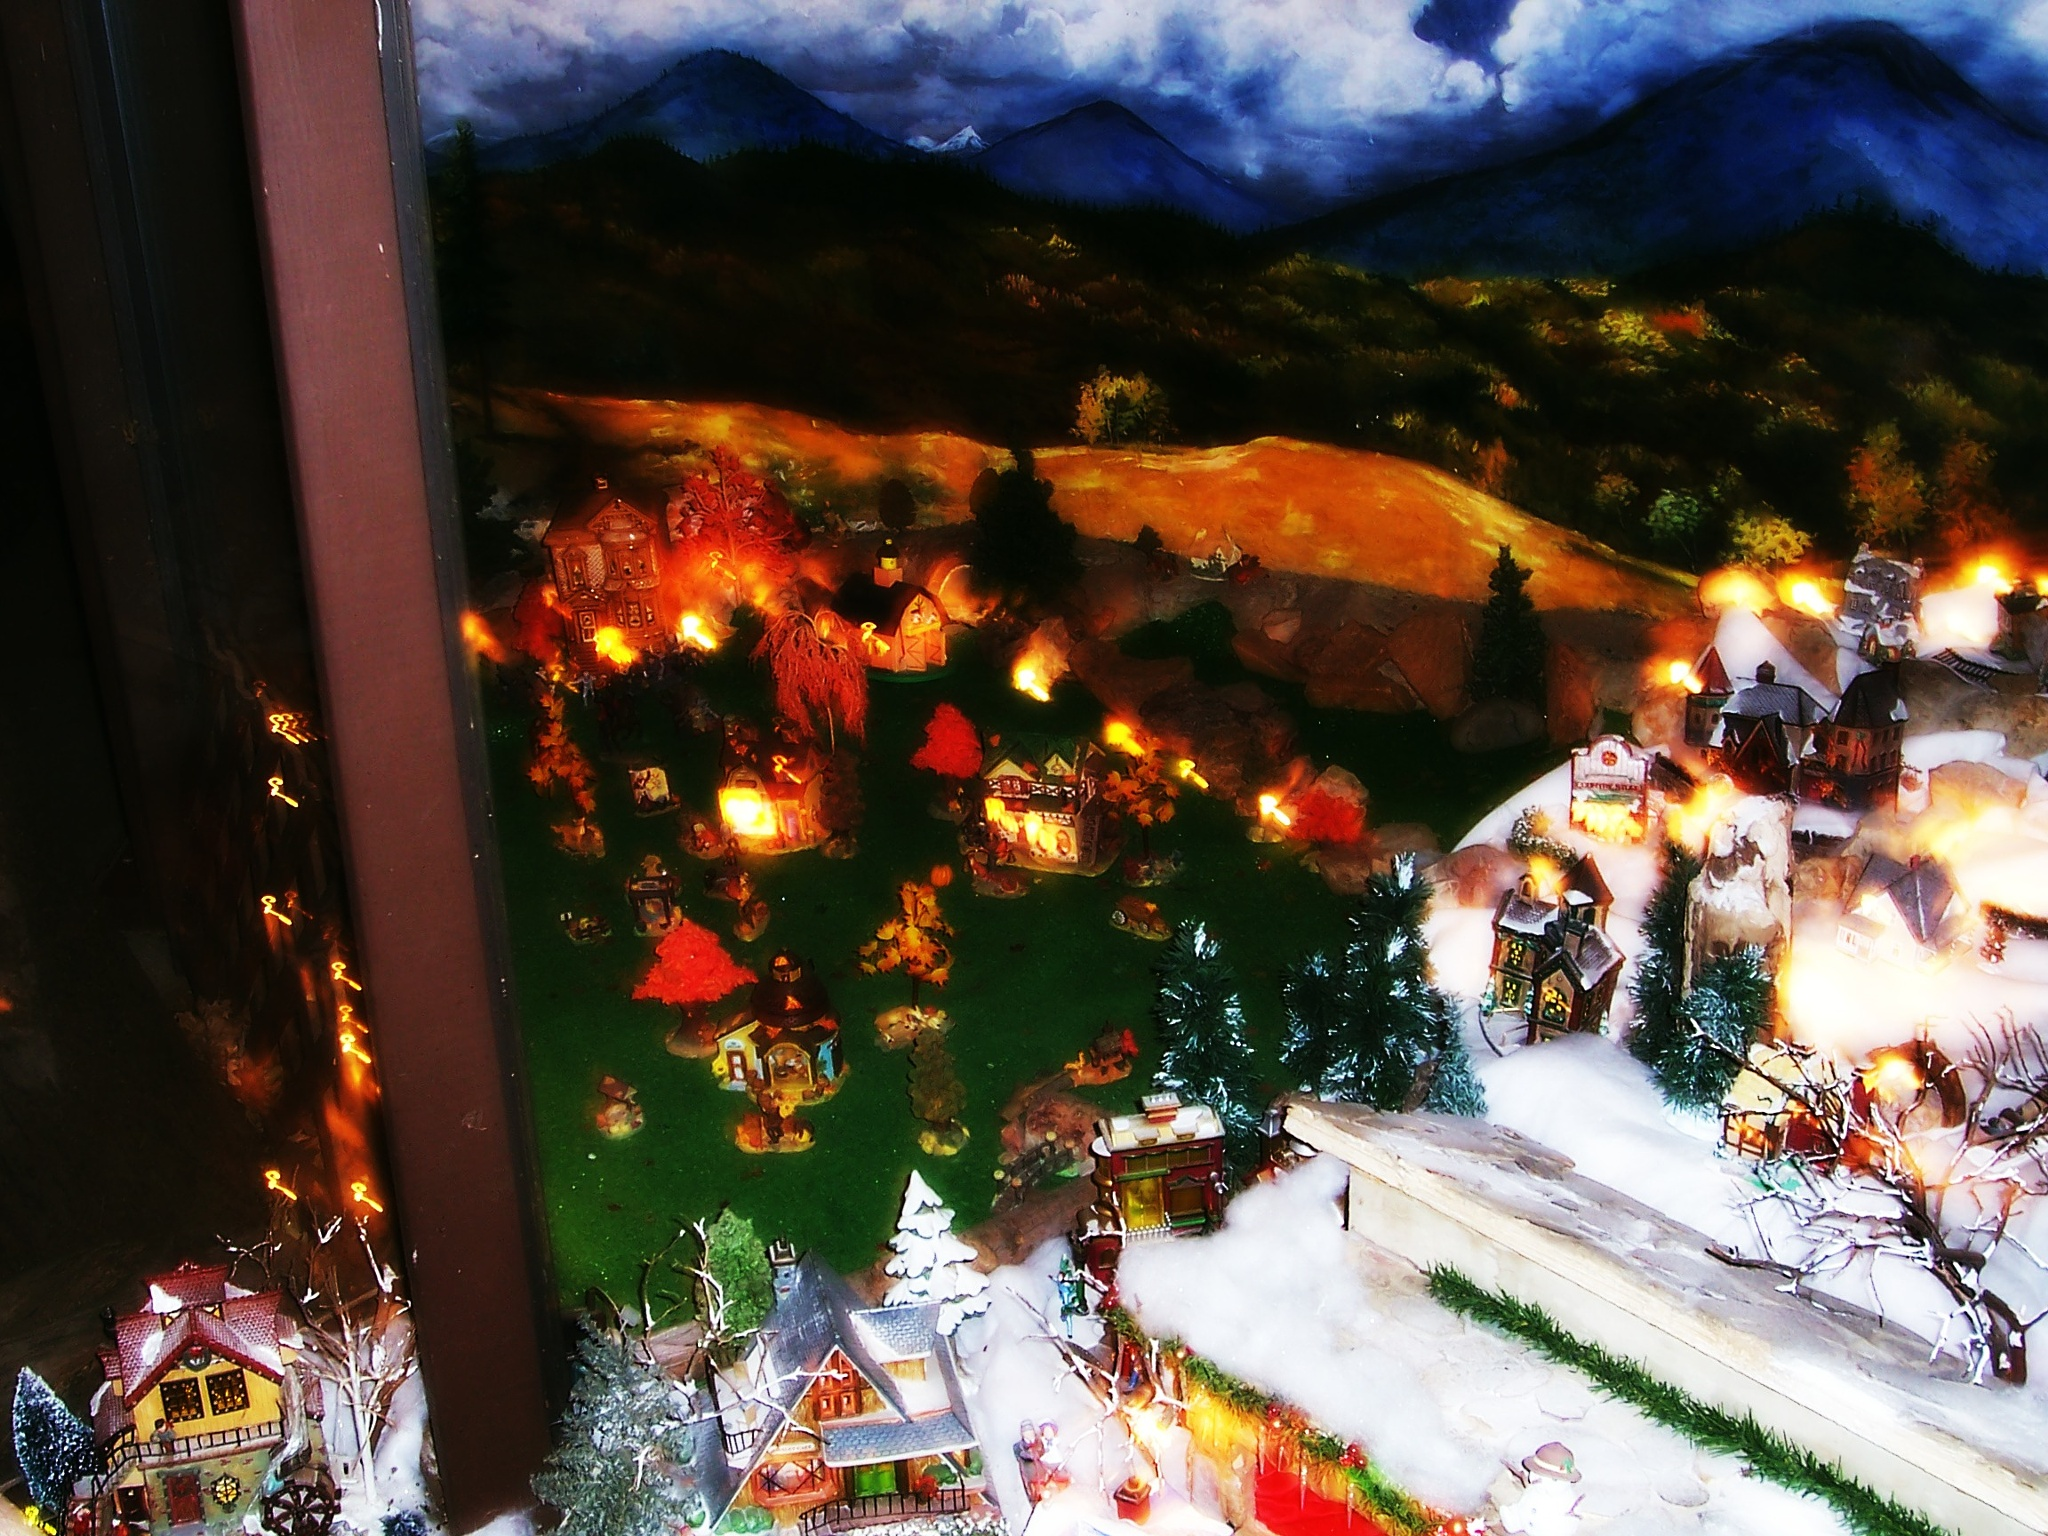 Autumn & Christmas Village by Jen Sulser